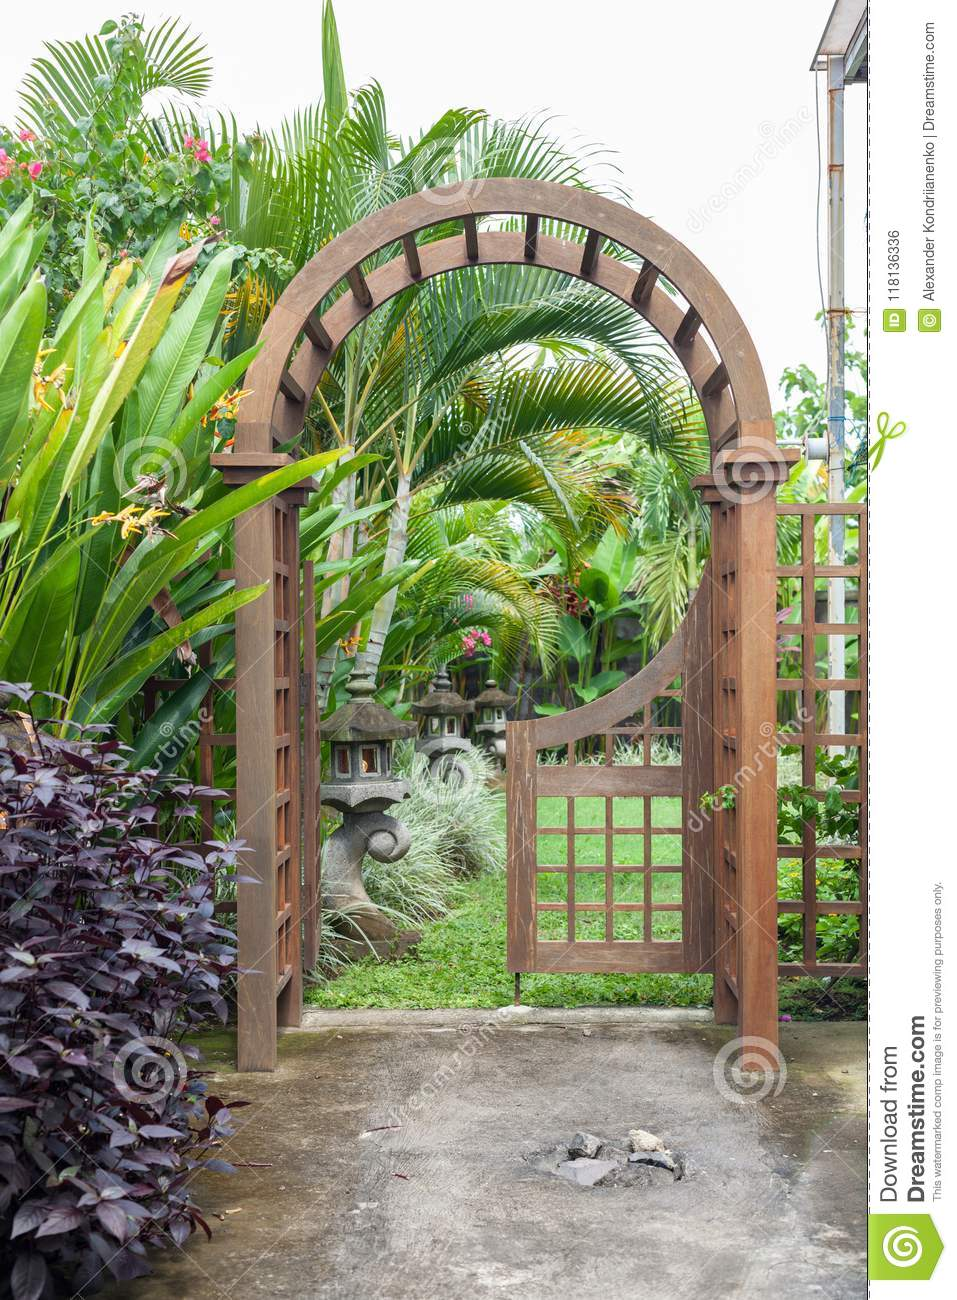 Download Wooden Arbor With Close On Half Gate In Garden. Wooden Arched  Entrance To The